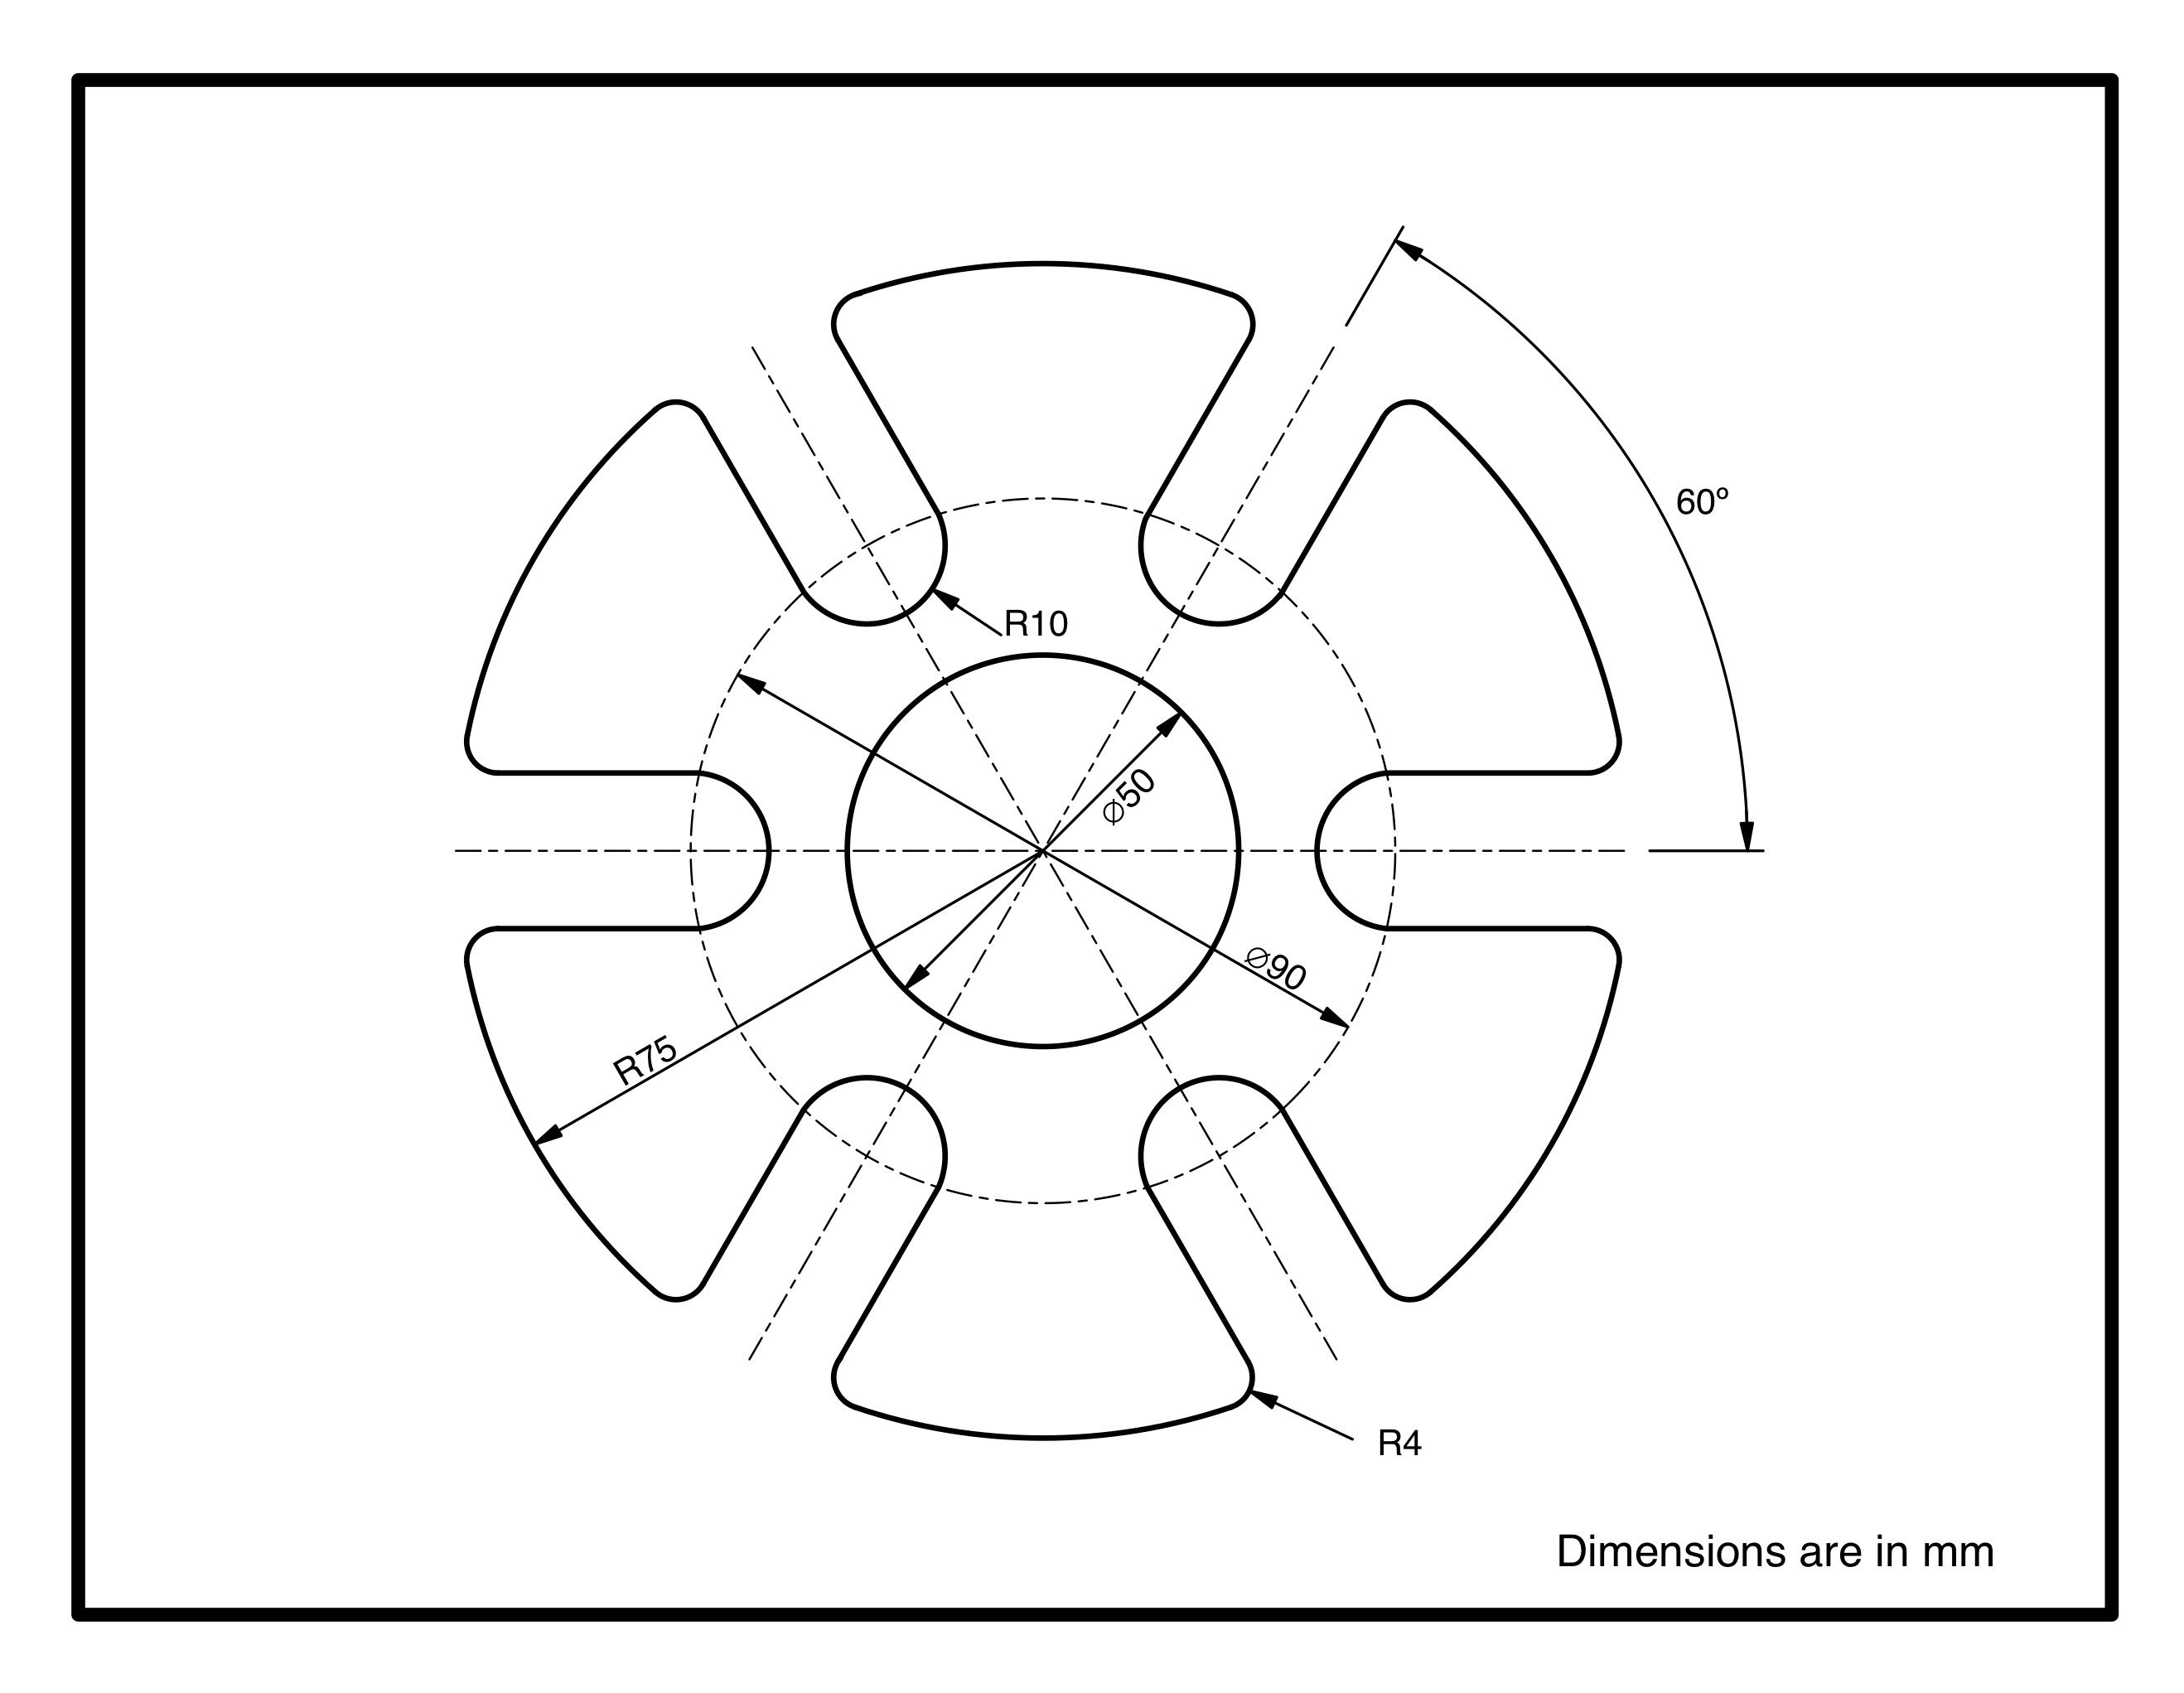 Pin By Mssf On Engineering Drawing